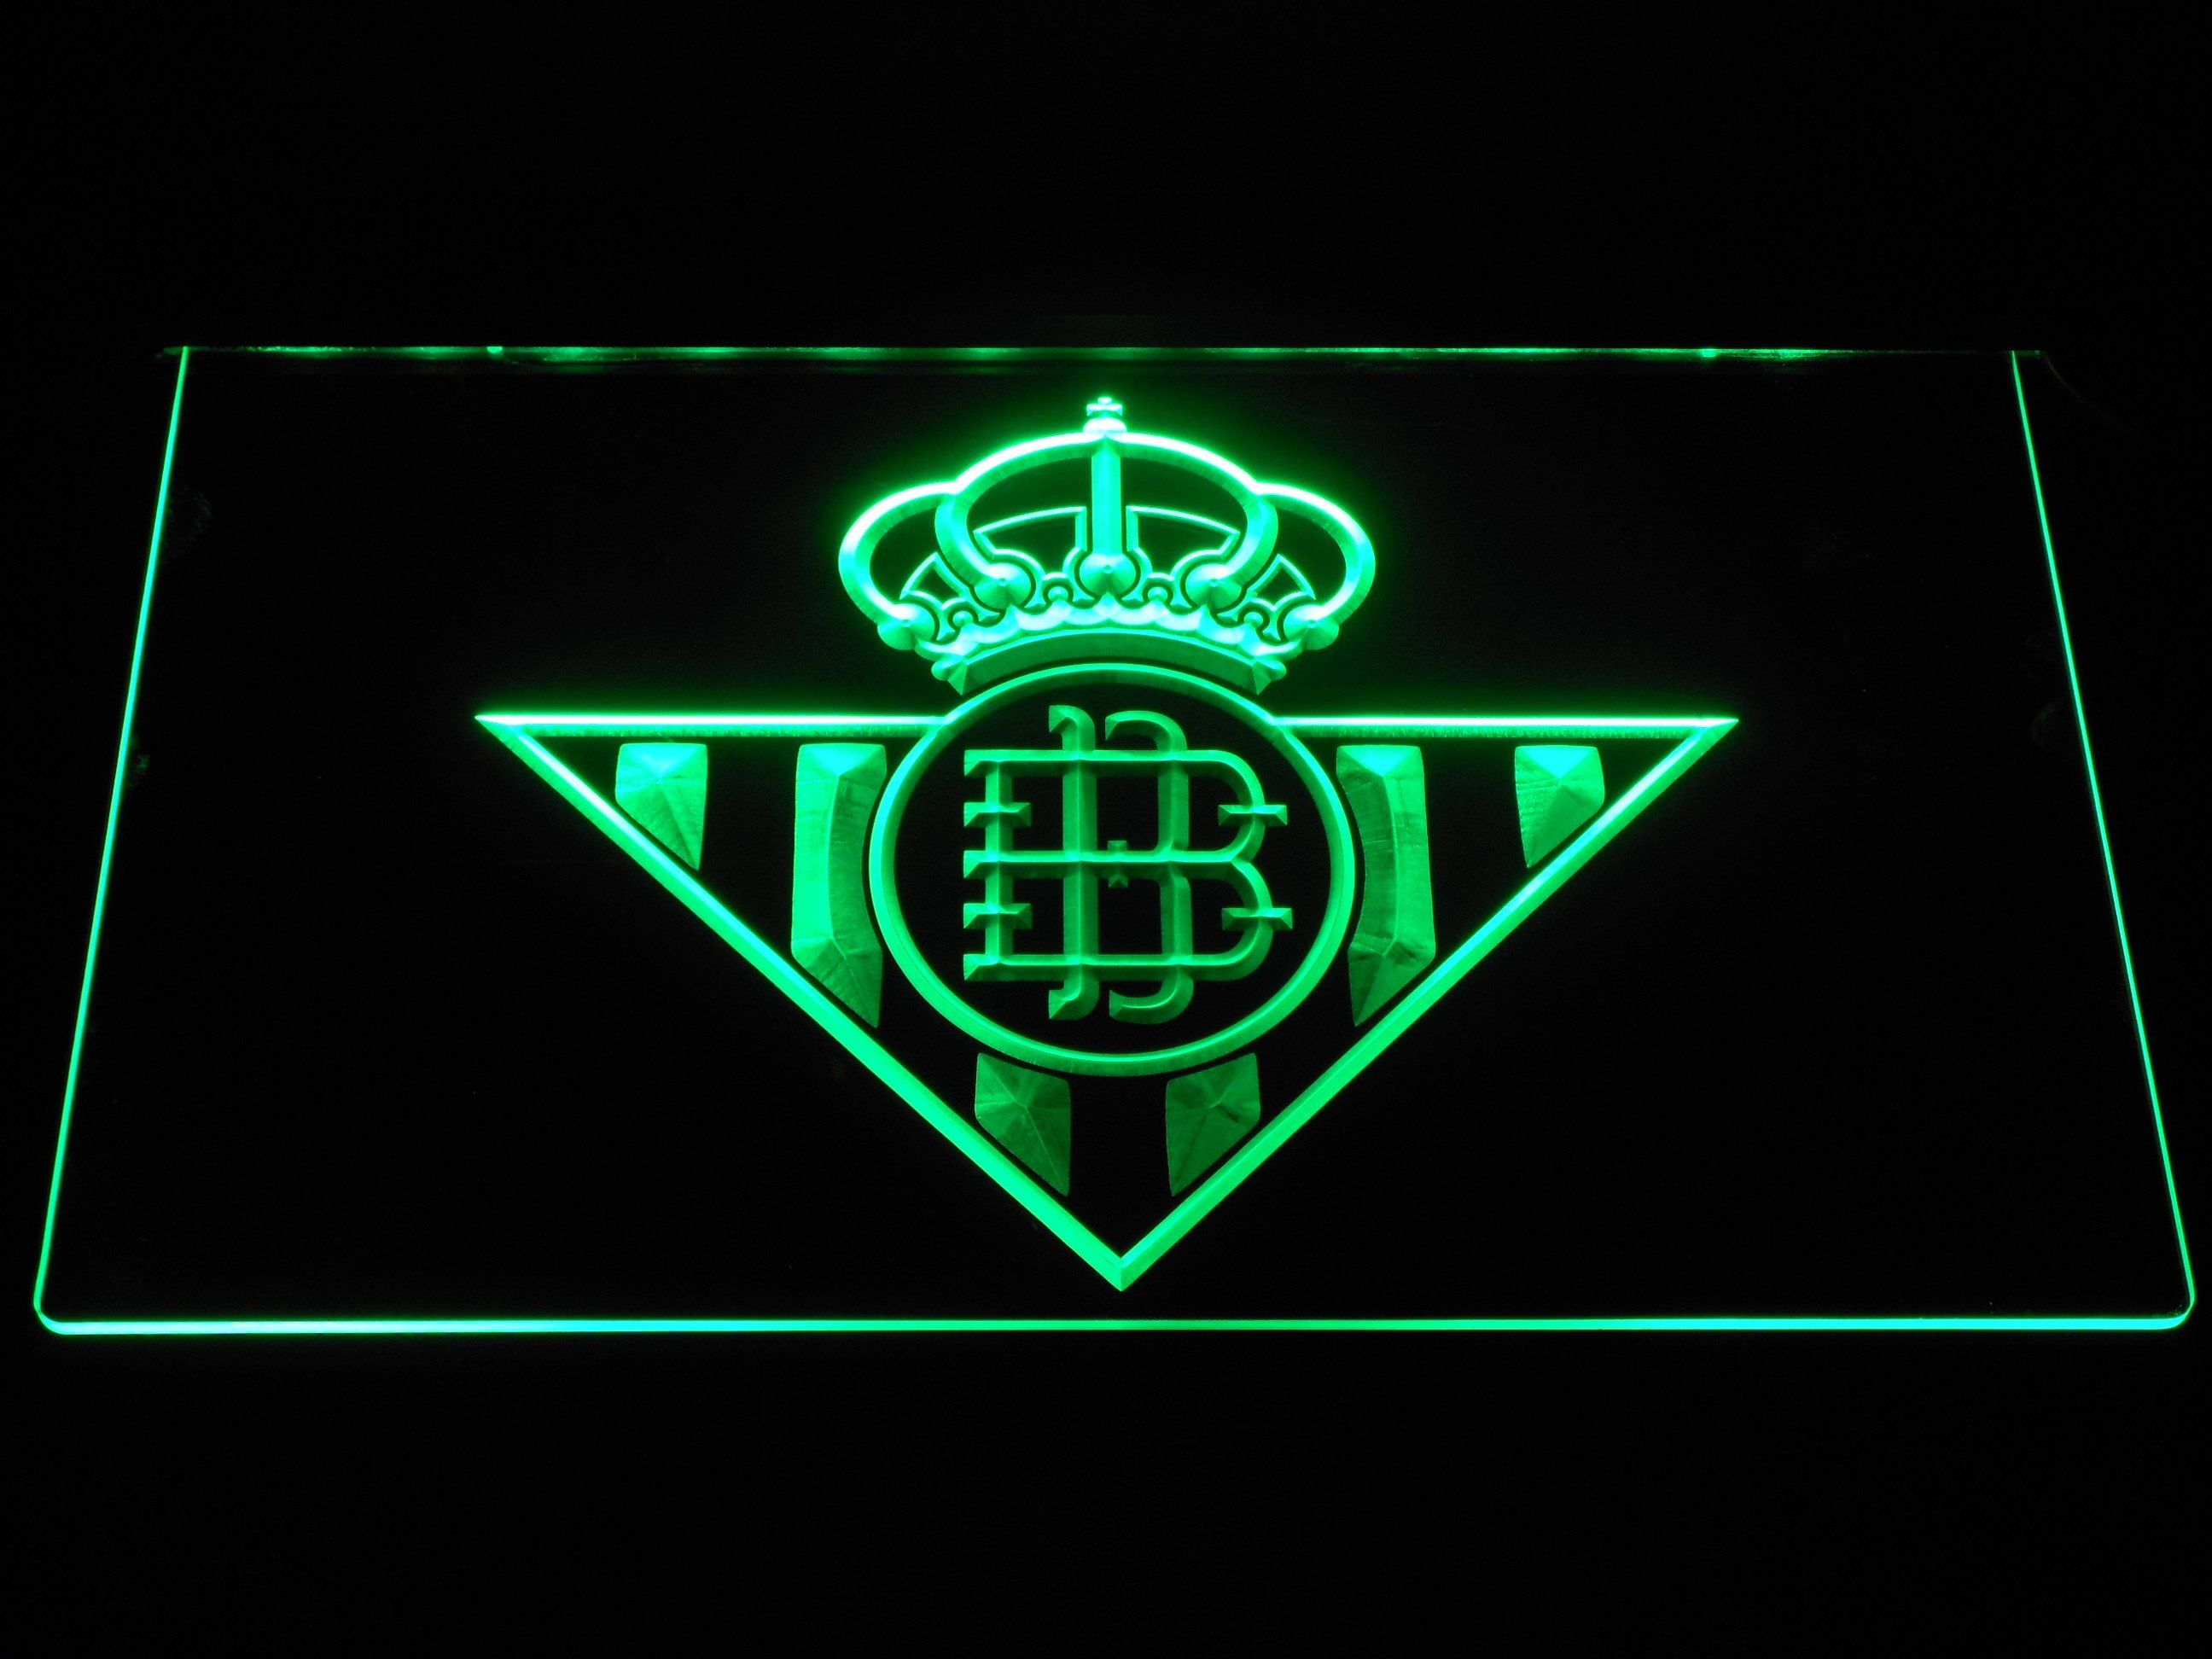 Real Betis LED Neon Sign   Led neon signs, Neon signs ...